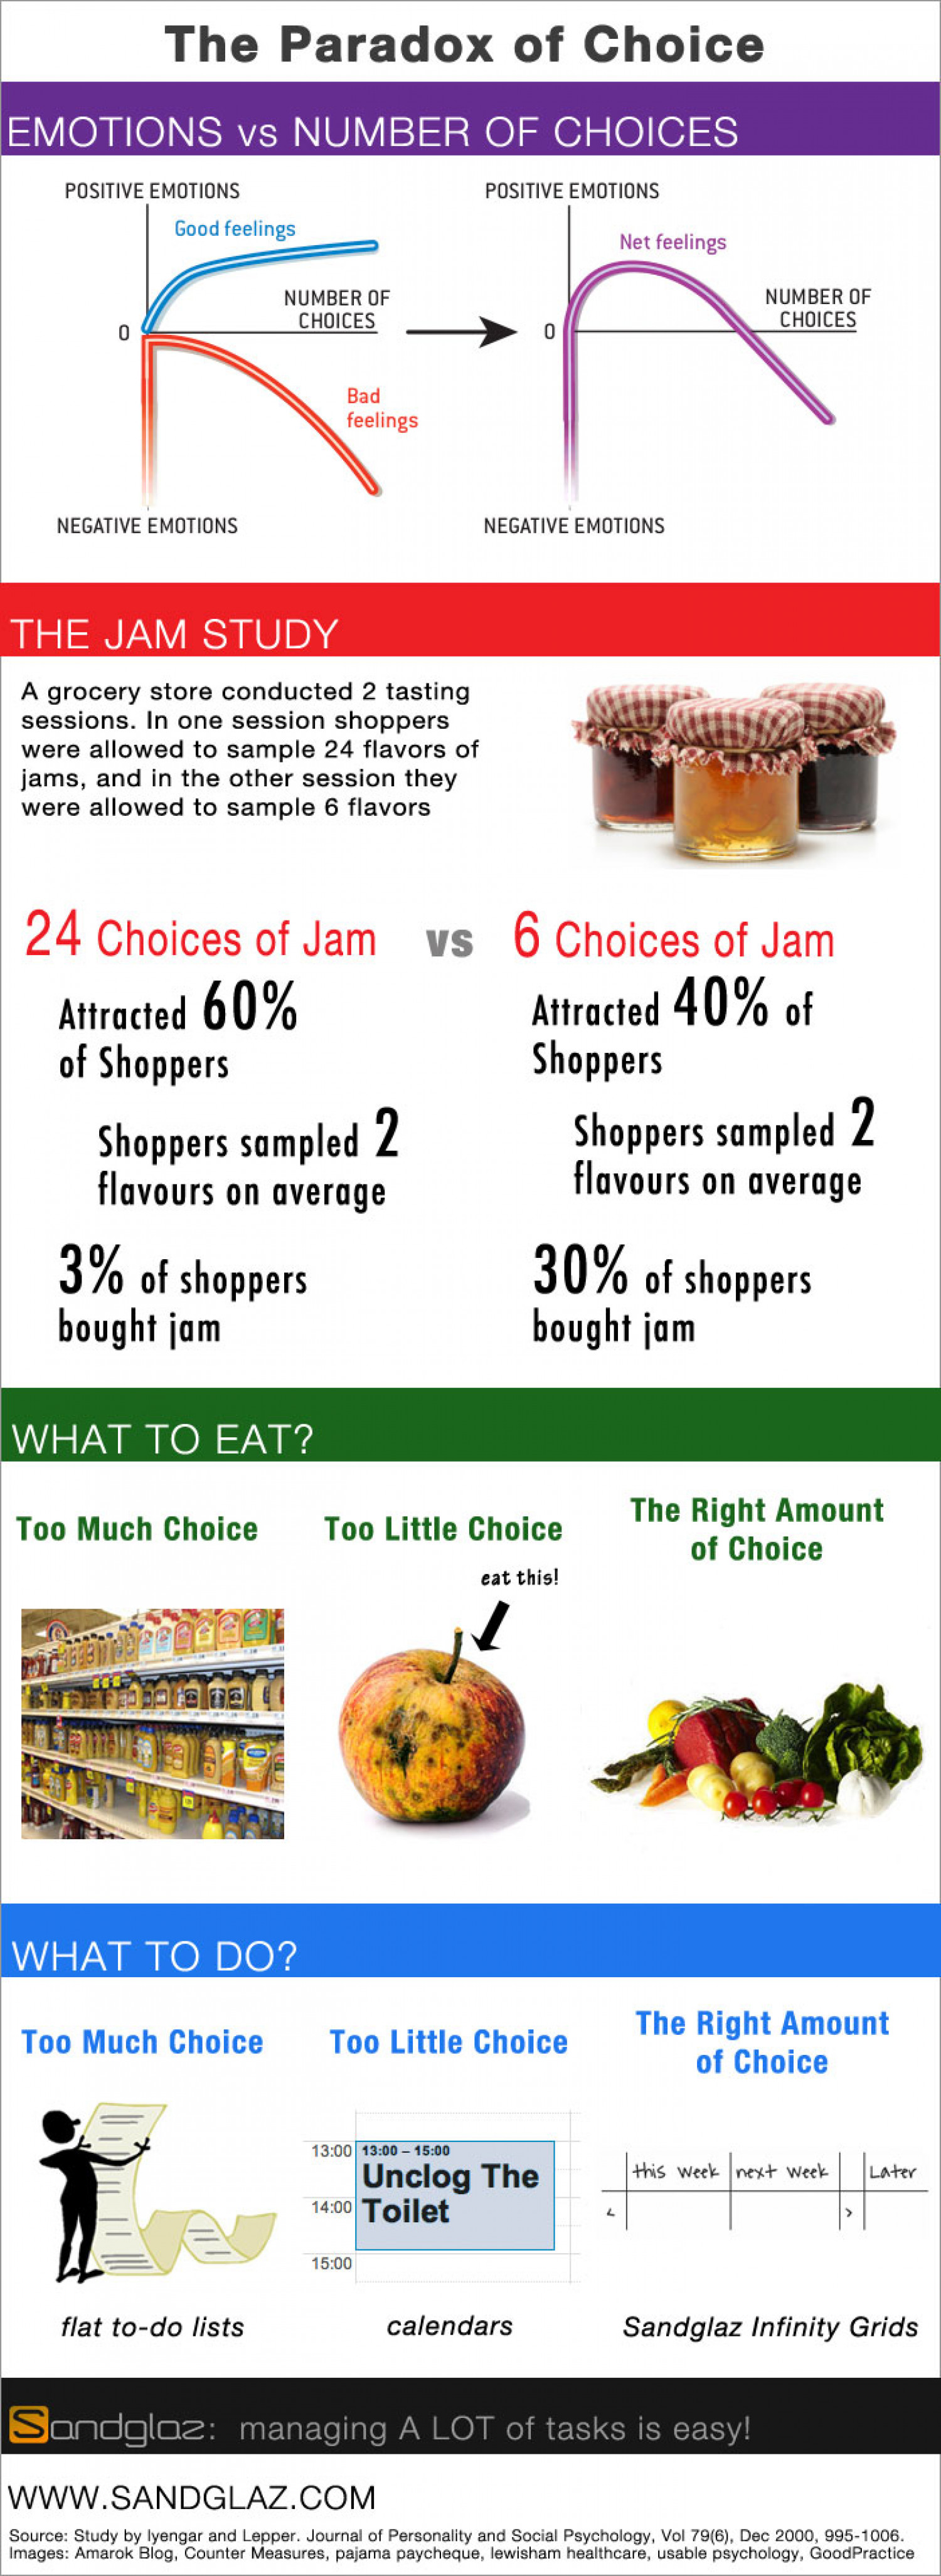 The Paradox of Choice Infographic